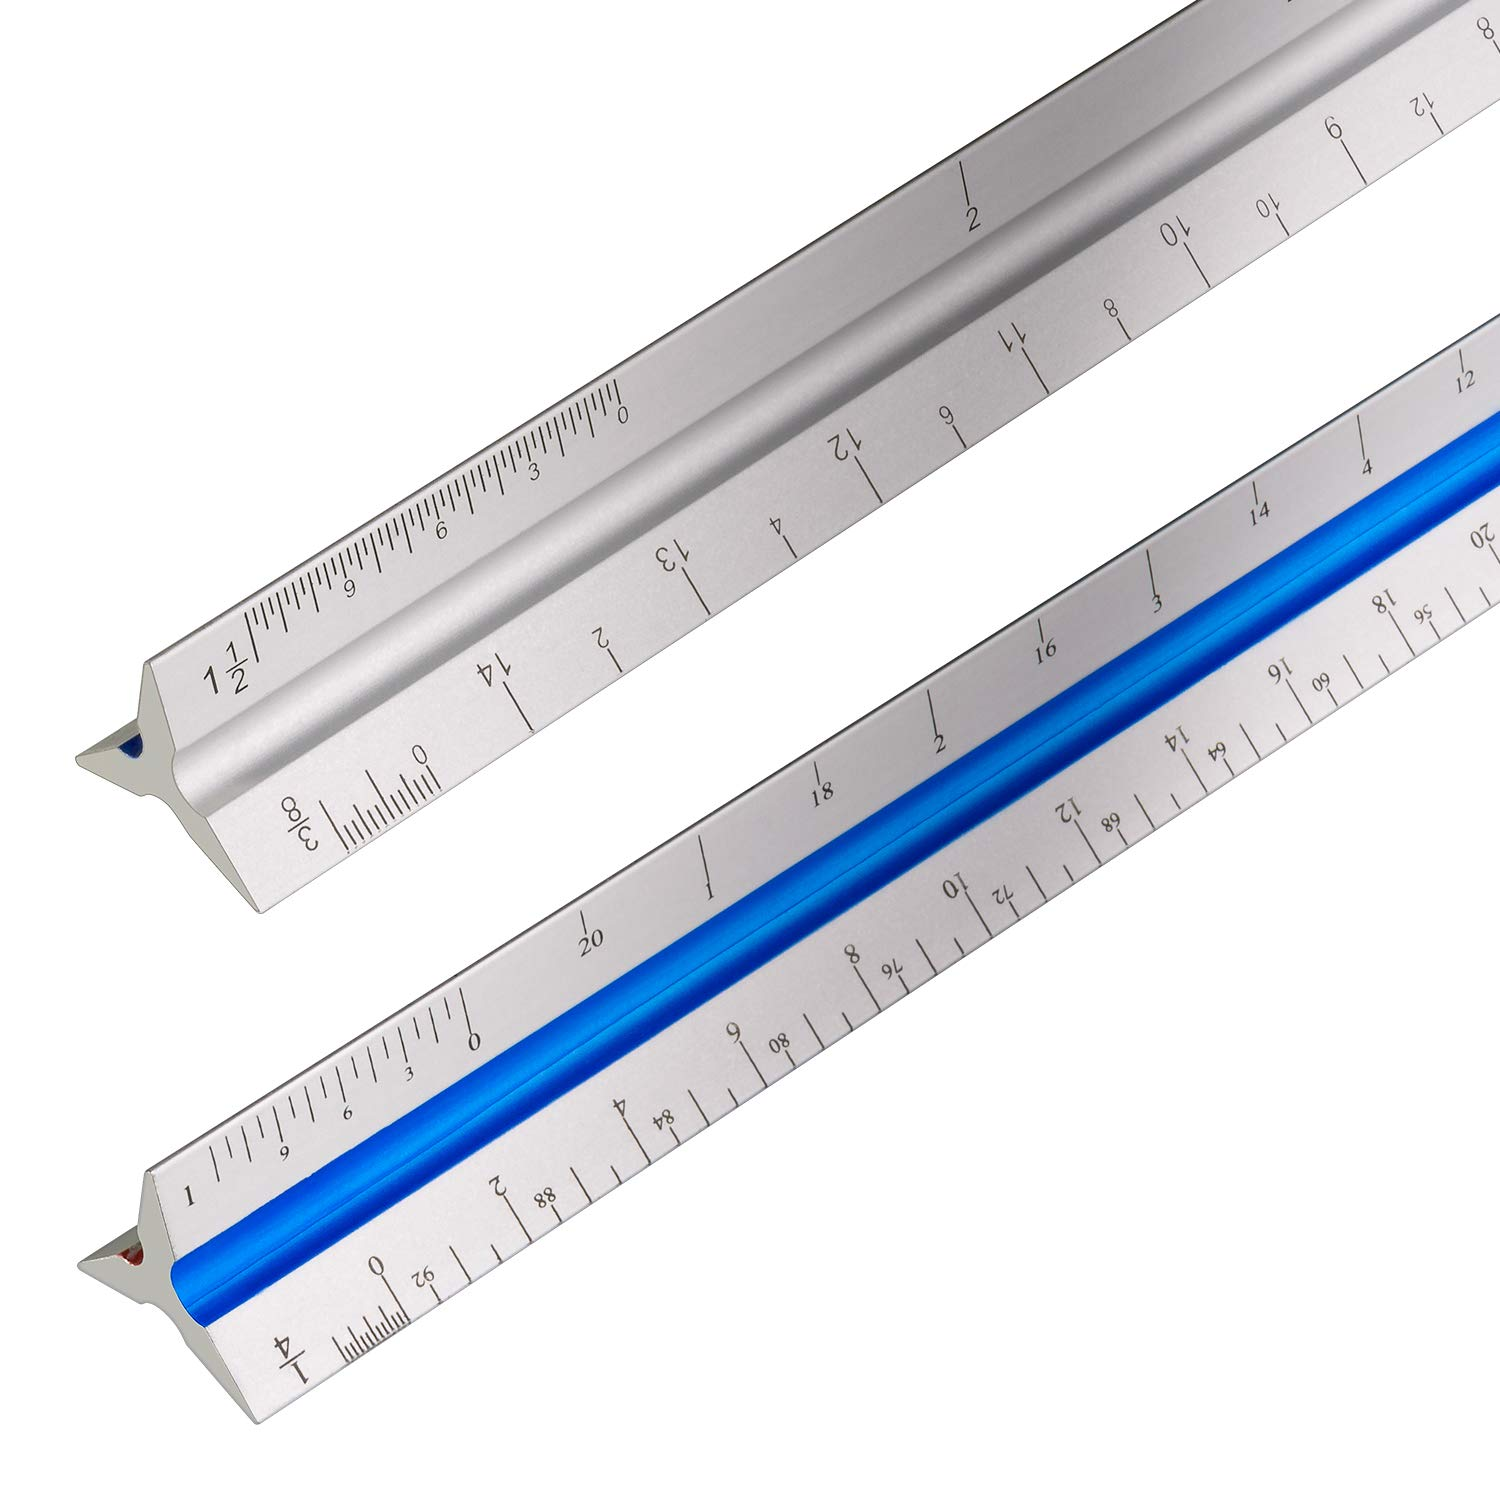 2 Pack Triangular Architectural Scale Ruler Architects Scale 1-1/2'', 1, 3/4'', 3/8'', 3/16'', 3/32'', 1/2'', 1/4'', 1/8'', 3, 16 - Aluminum